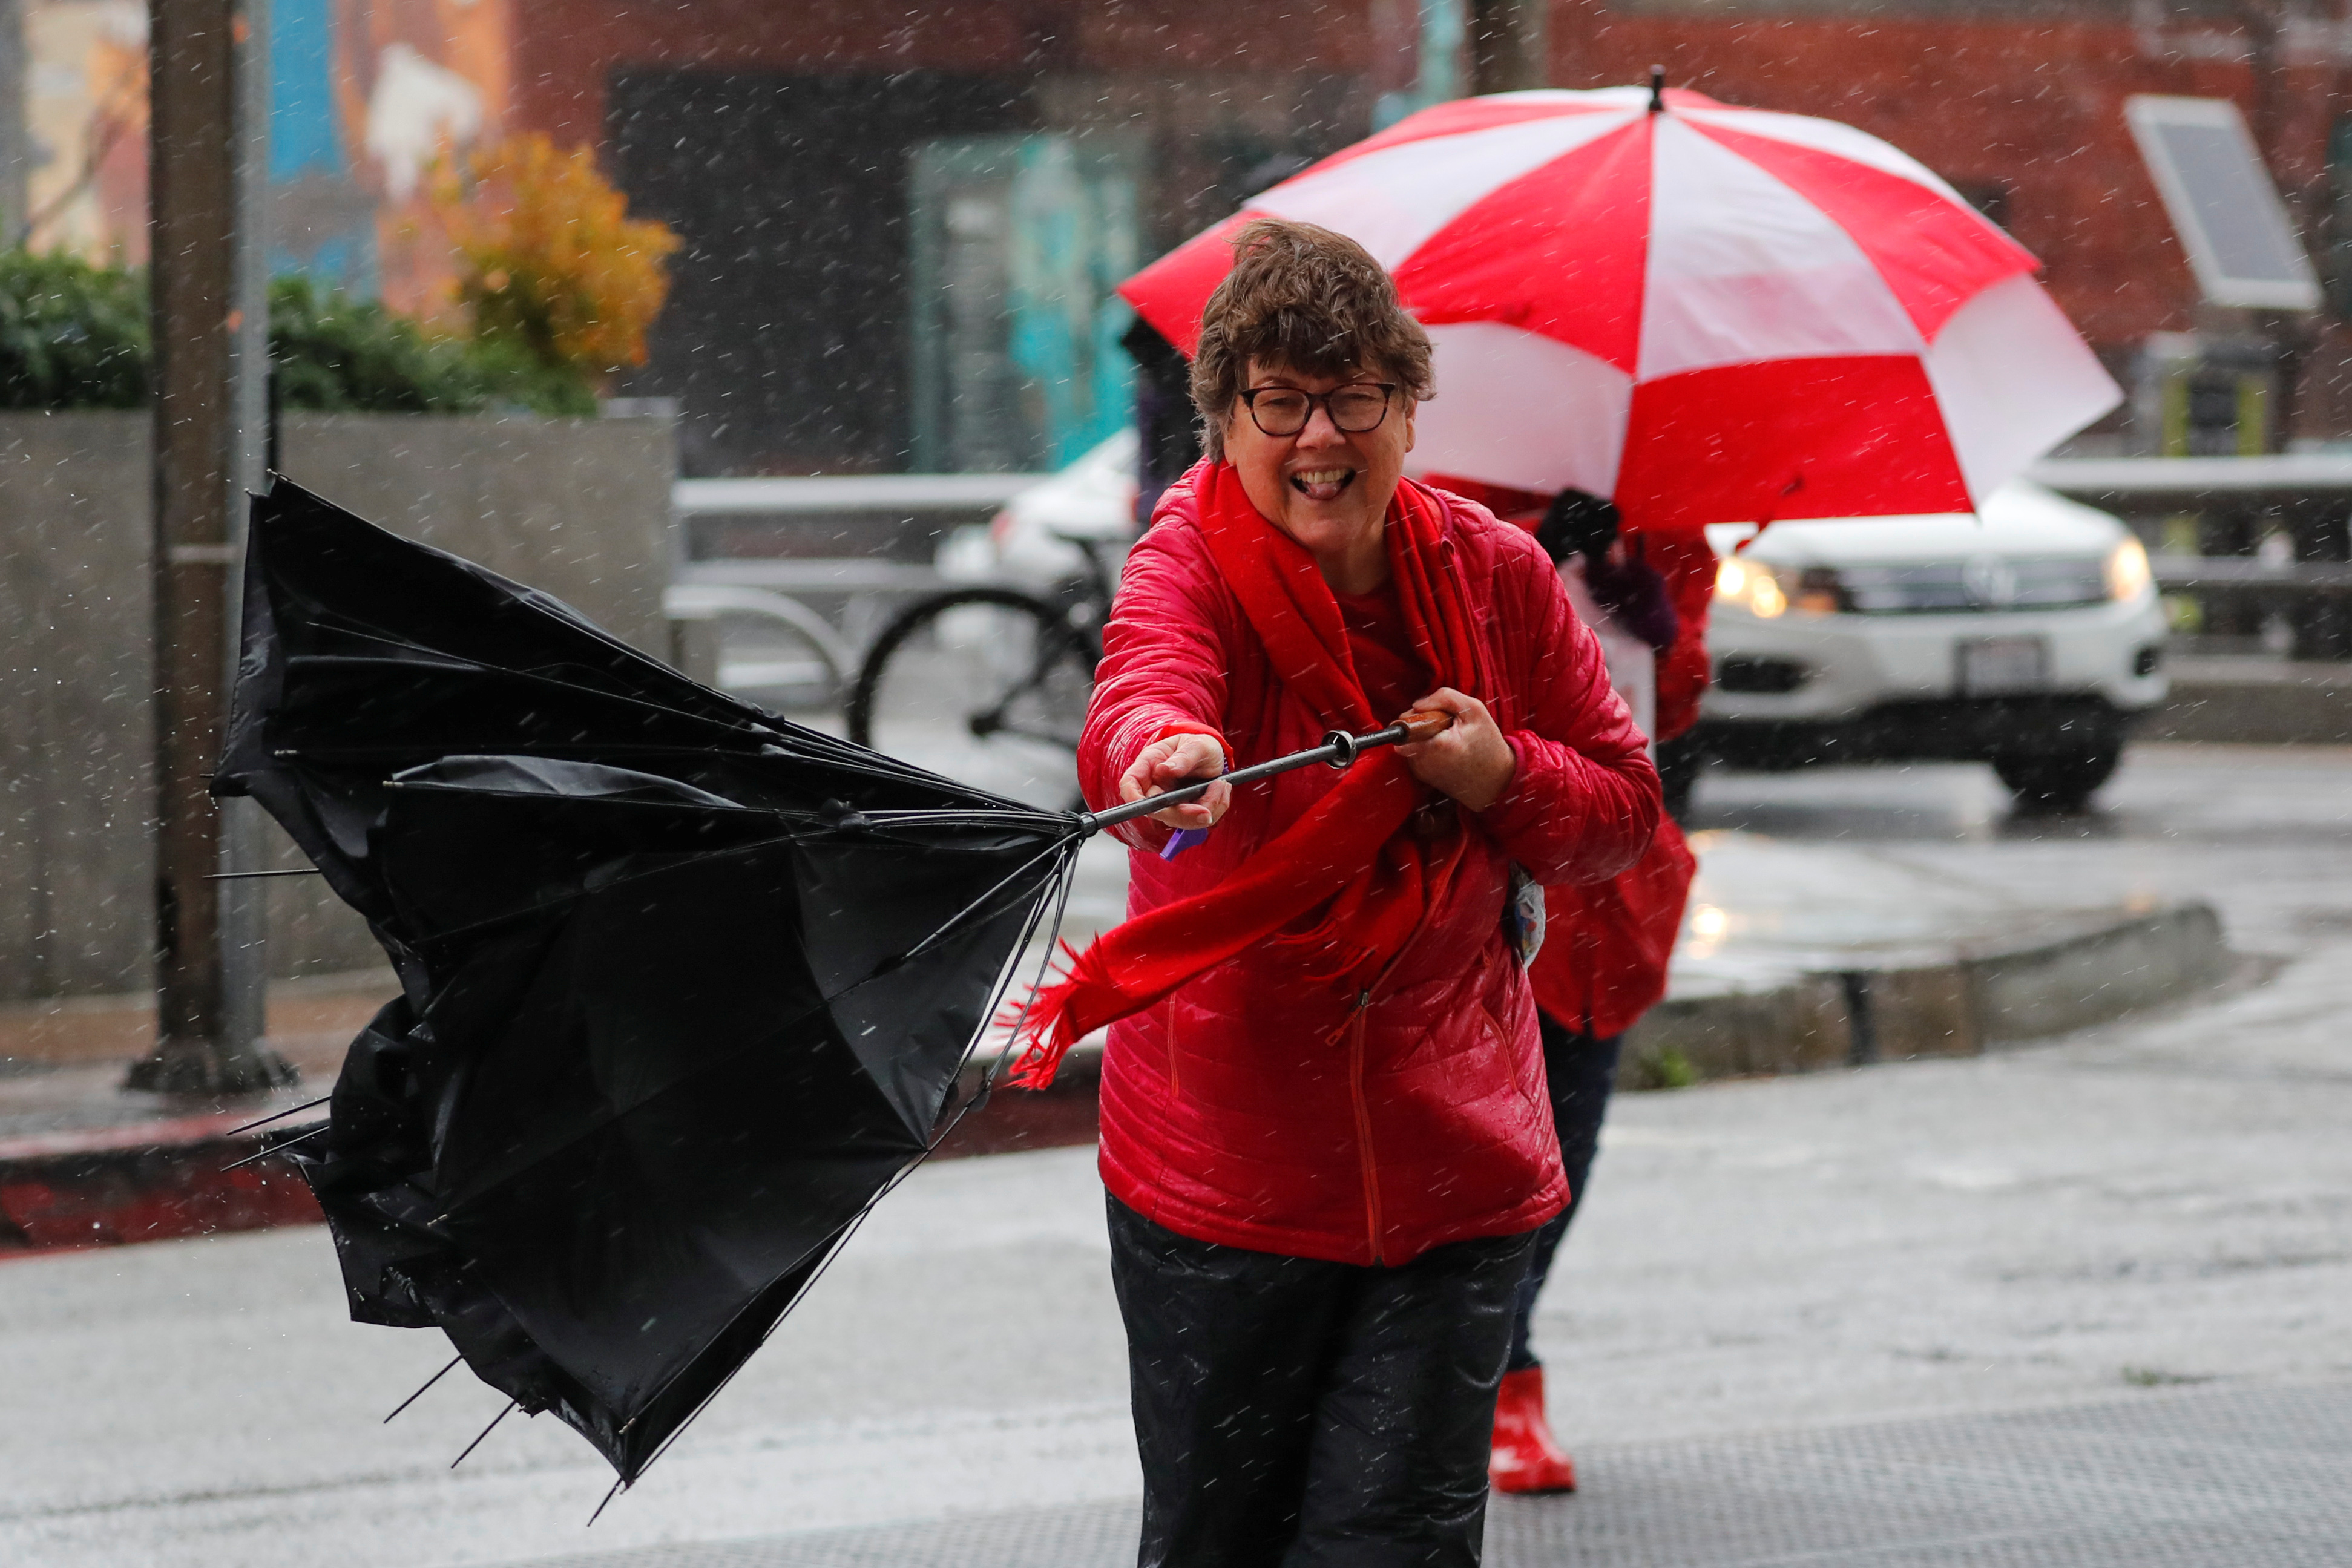 California storms to dump up to 7 feet of snow, force evacuations